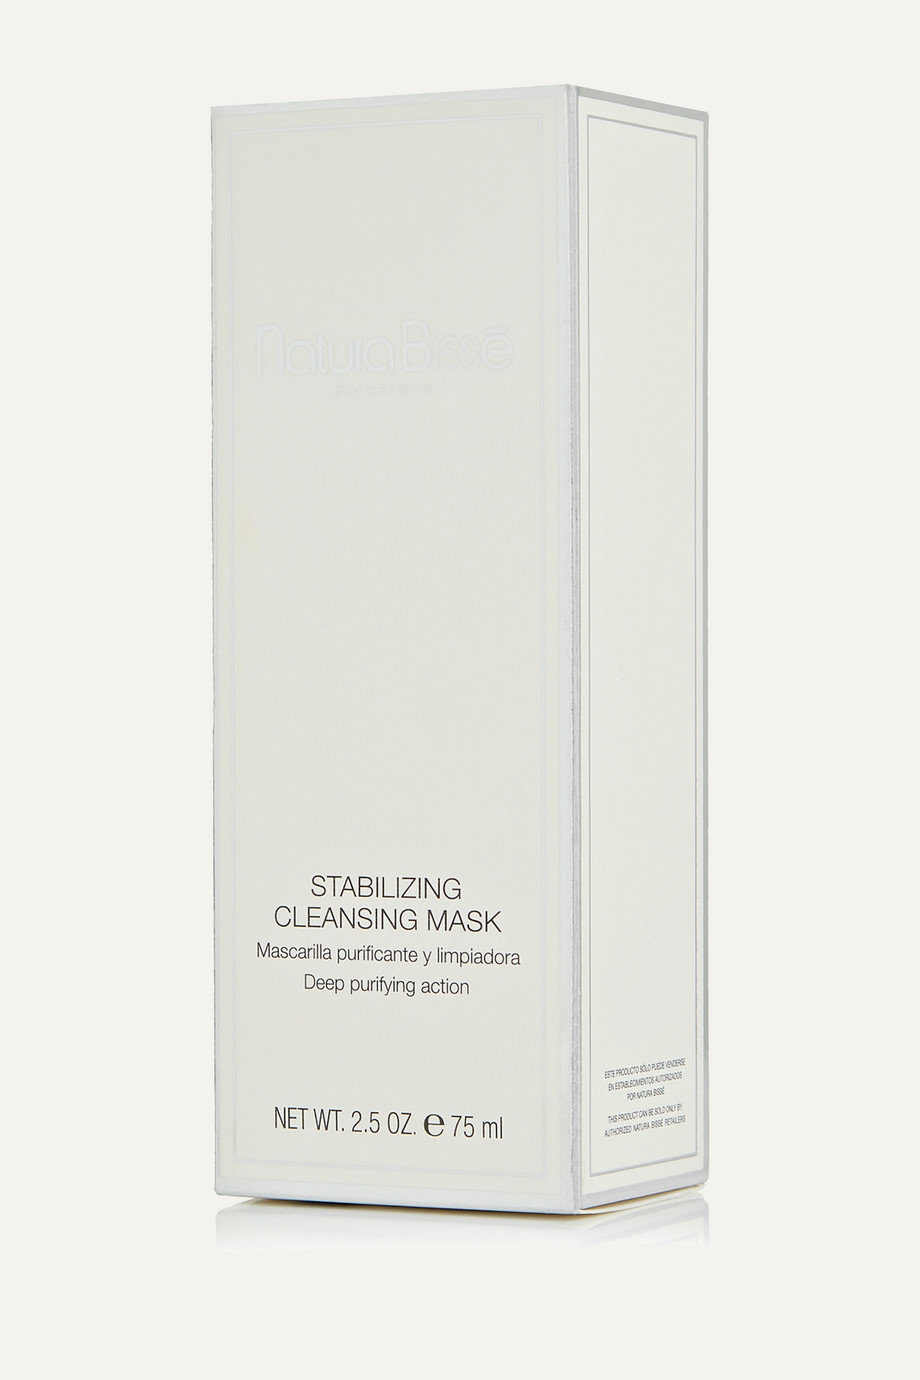 Natura Bissé Stabilizing Cleansing Mask, 75ml